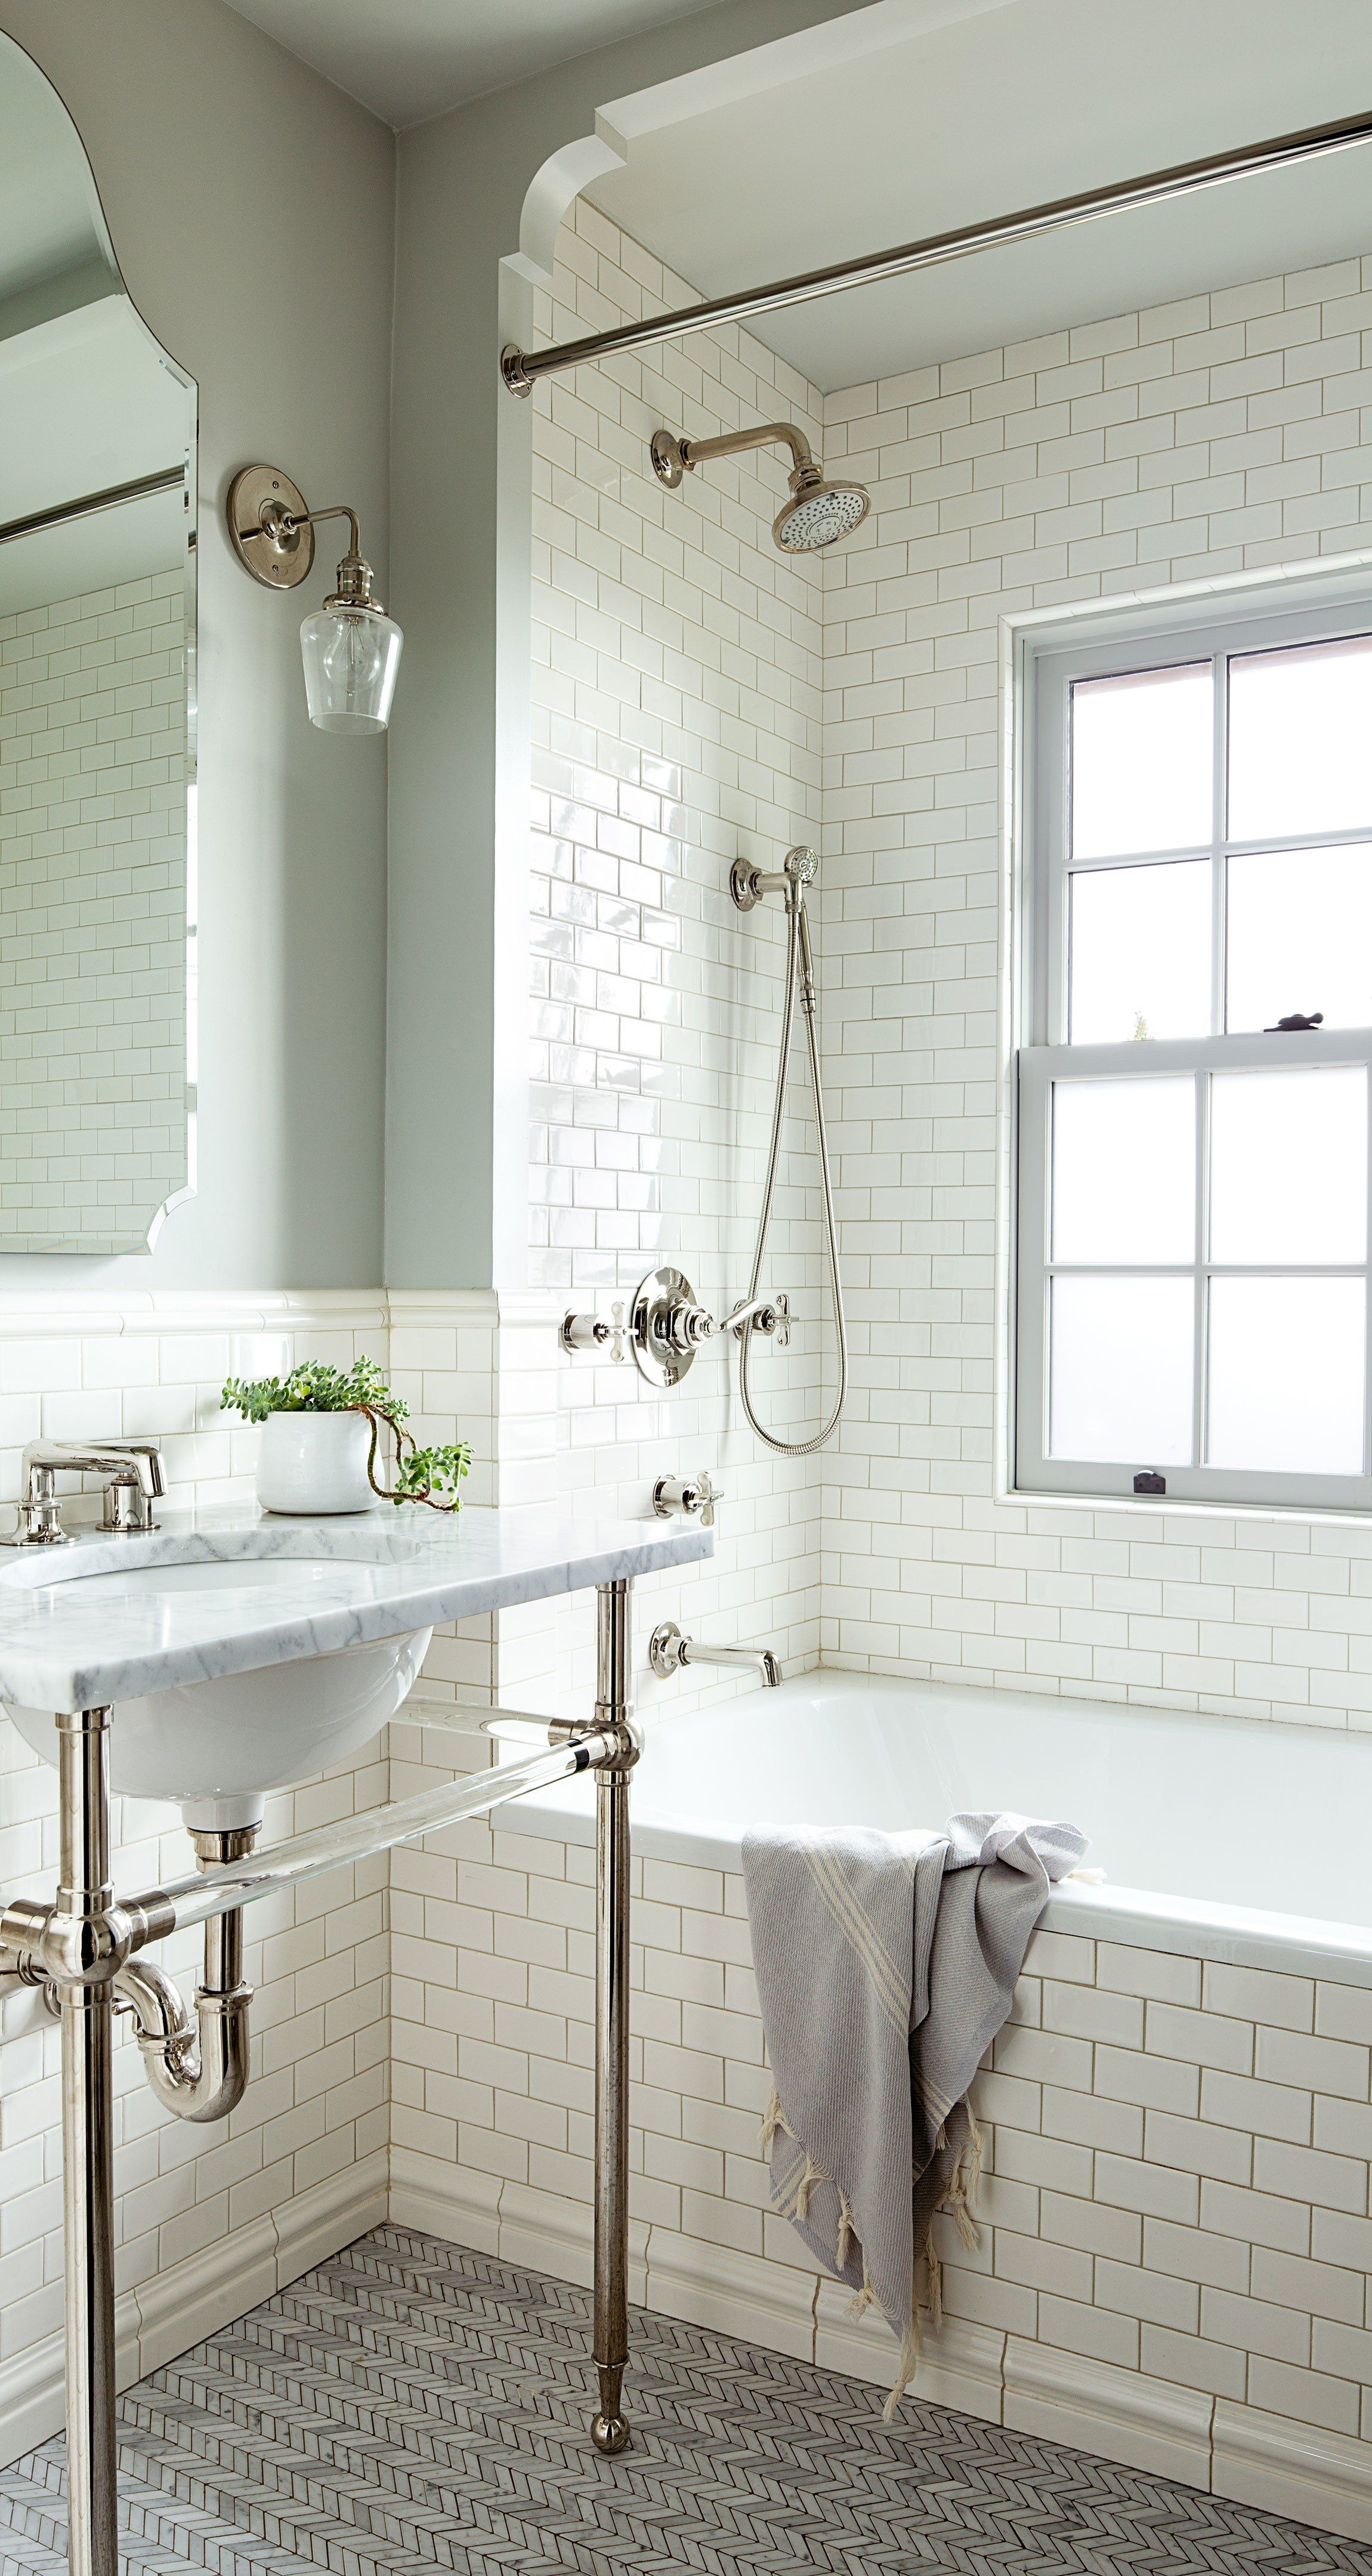 A 1920s House With A Modern Twist In Portland Oregon Small Bathroom Remodel Bathroom Remodel Master White Subway Tile Bathroom